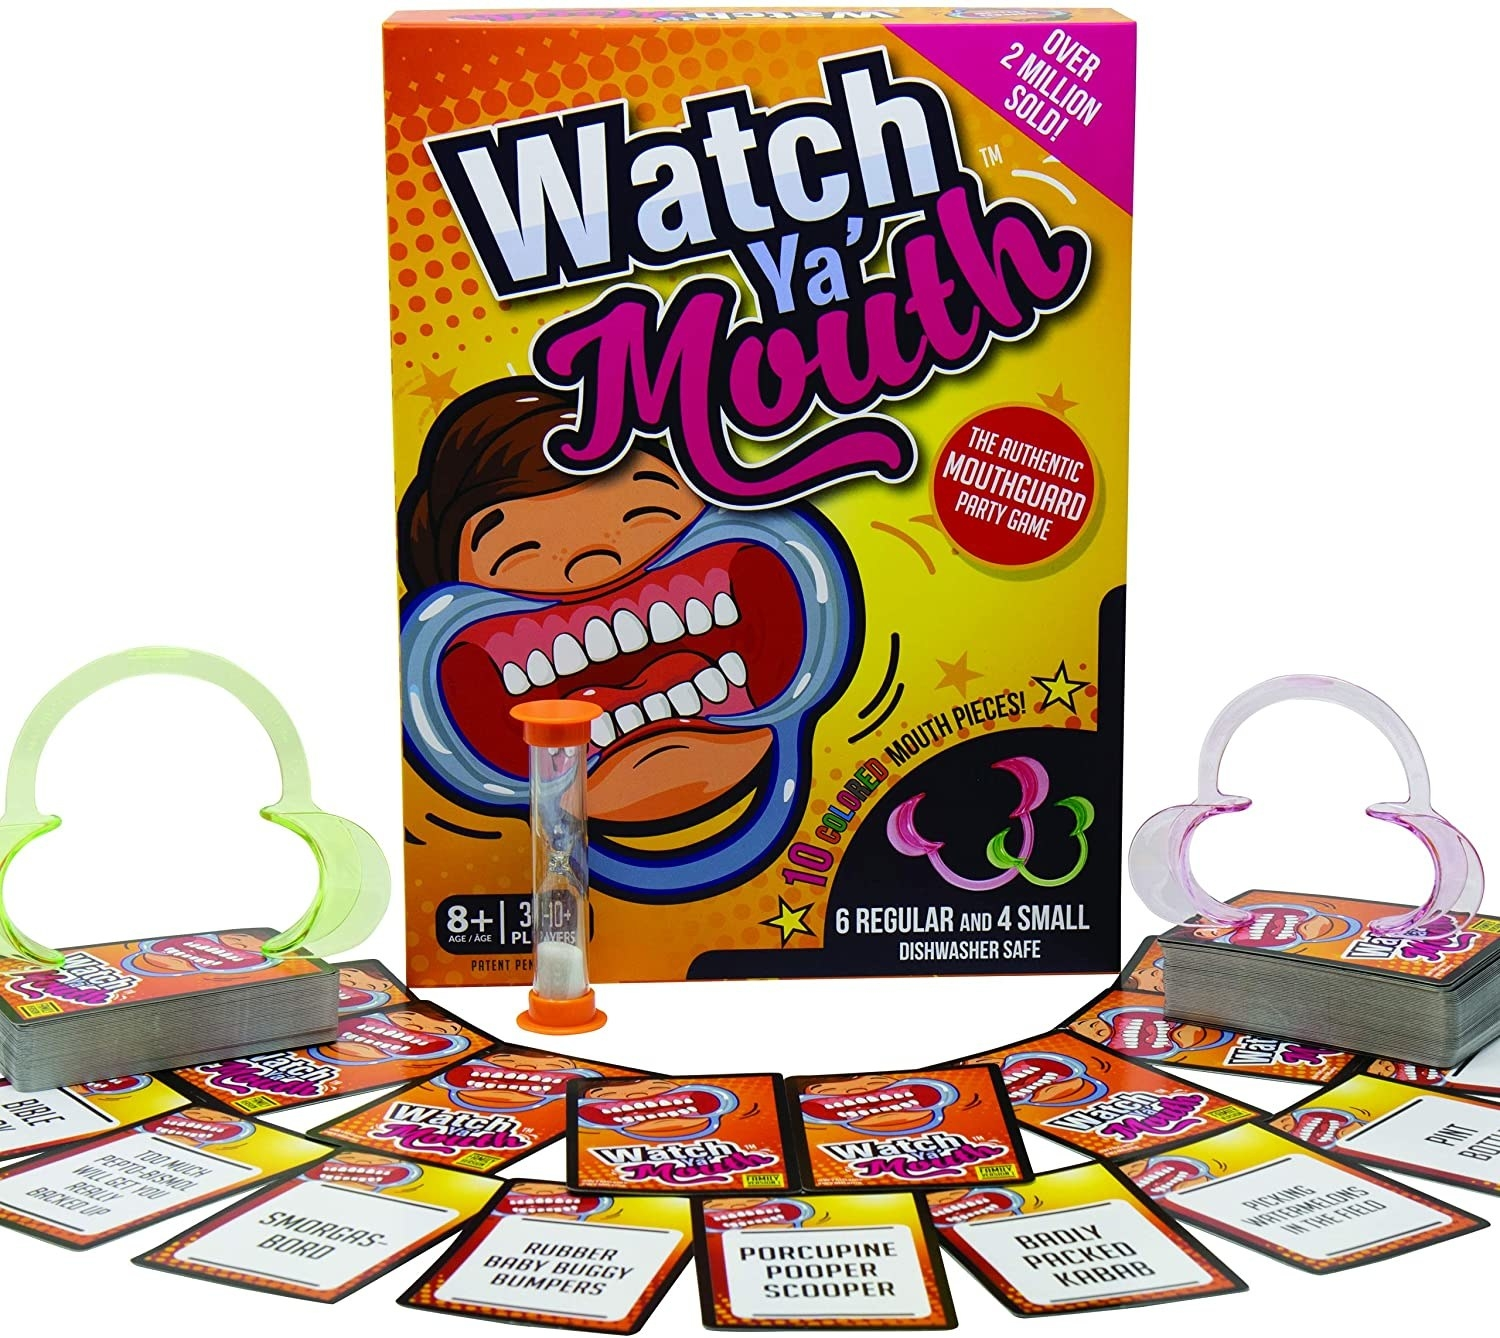 Watch Ya Mouth board game with cards and timer displayed